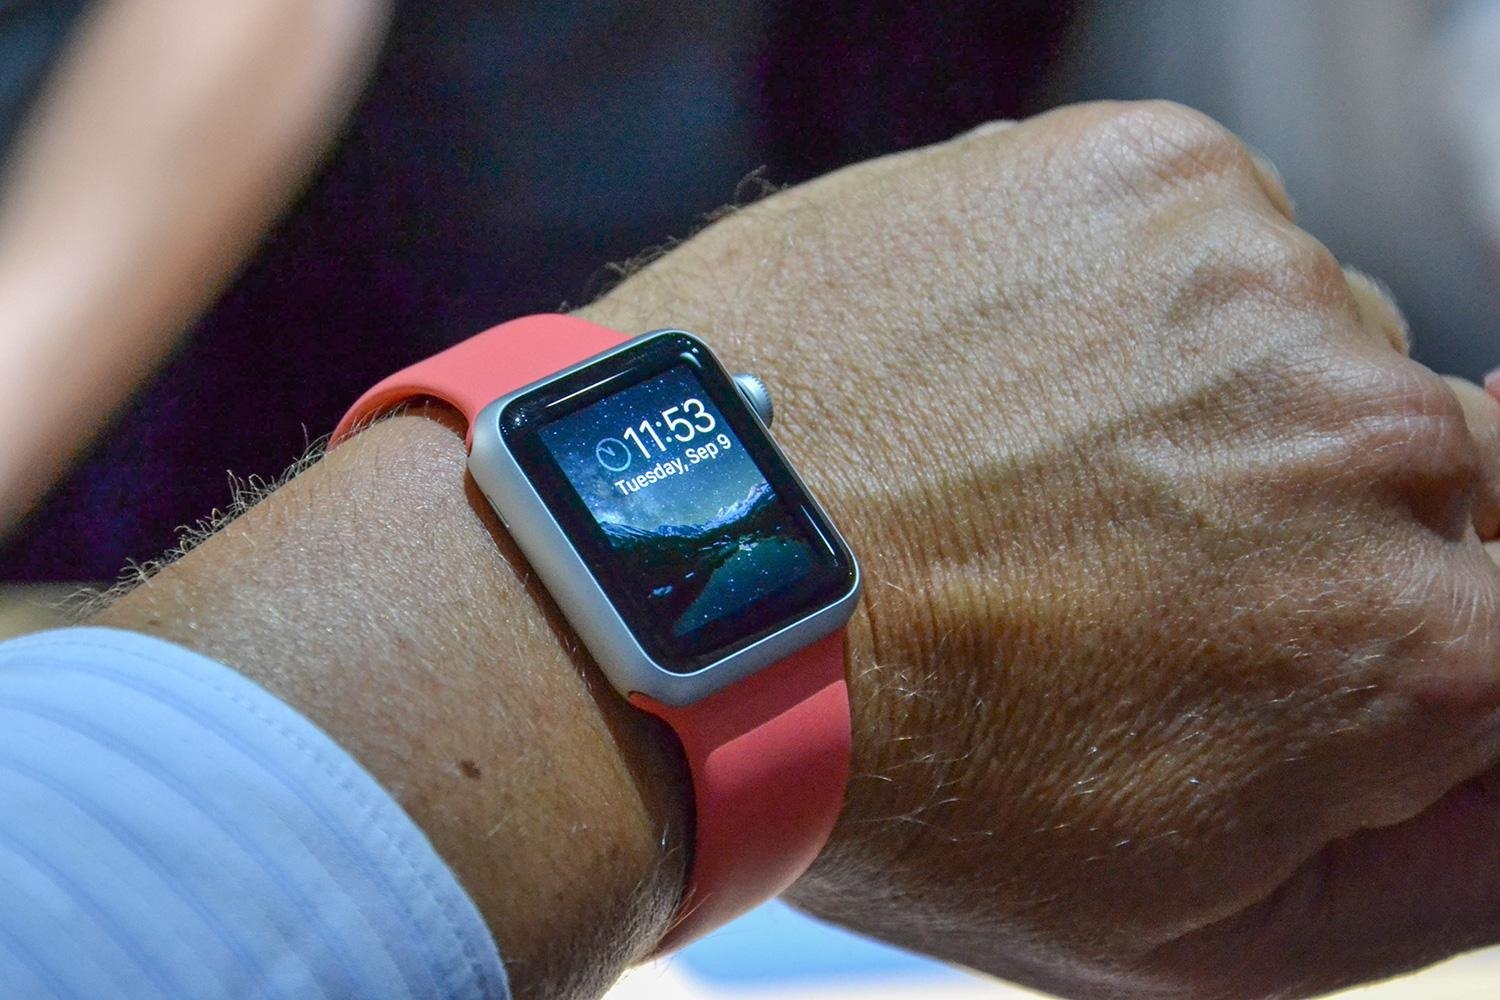 apple-watch-hands-on-8-1500x1000